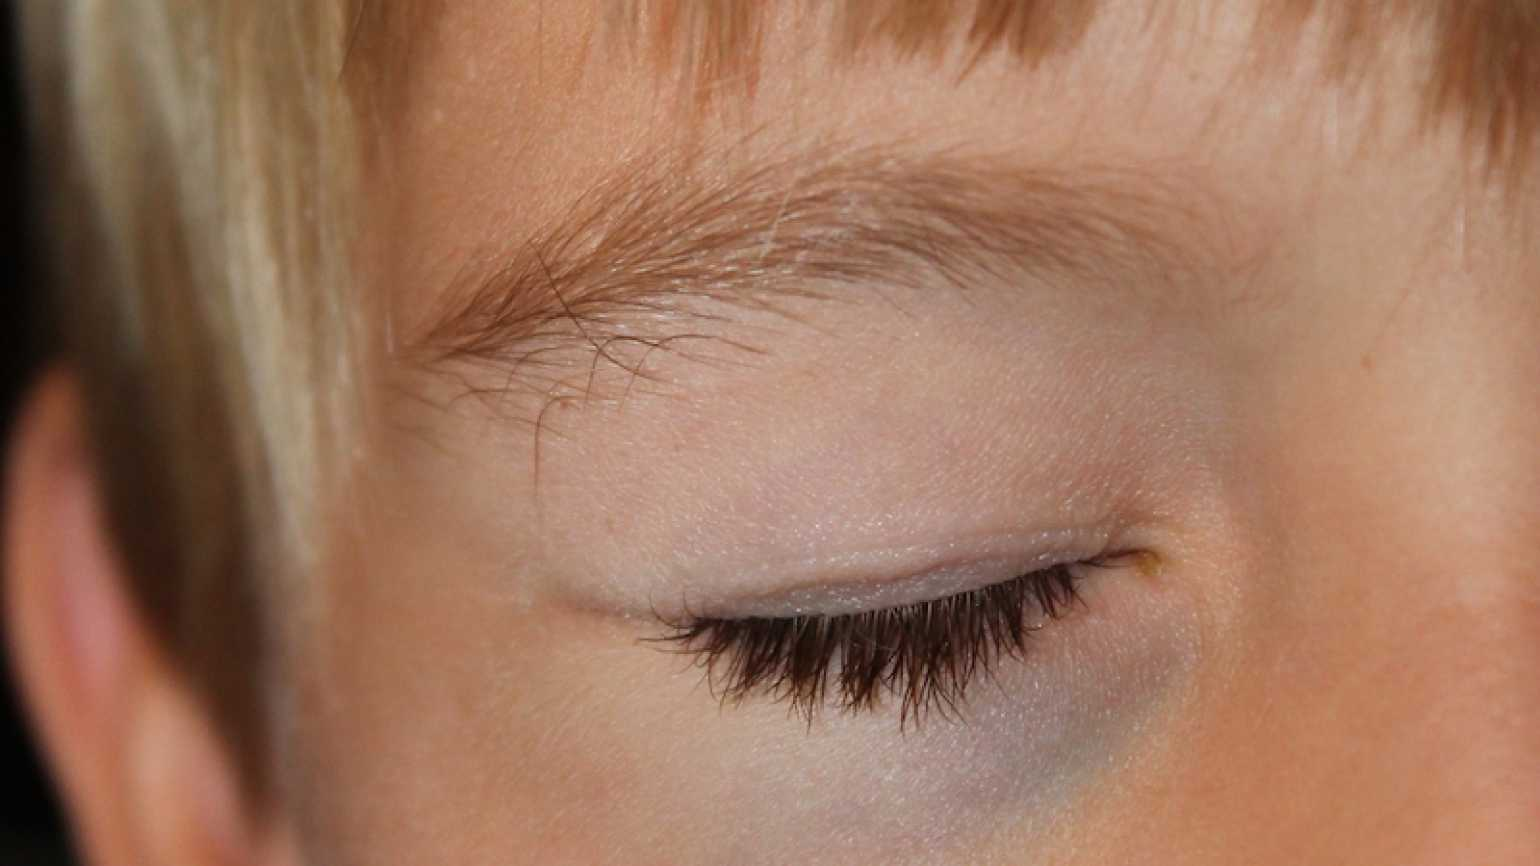 Shawnelle's youngest son proudly sports his first shiner.